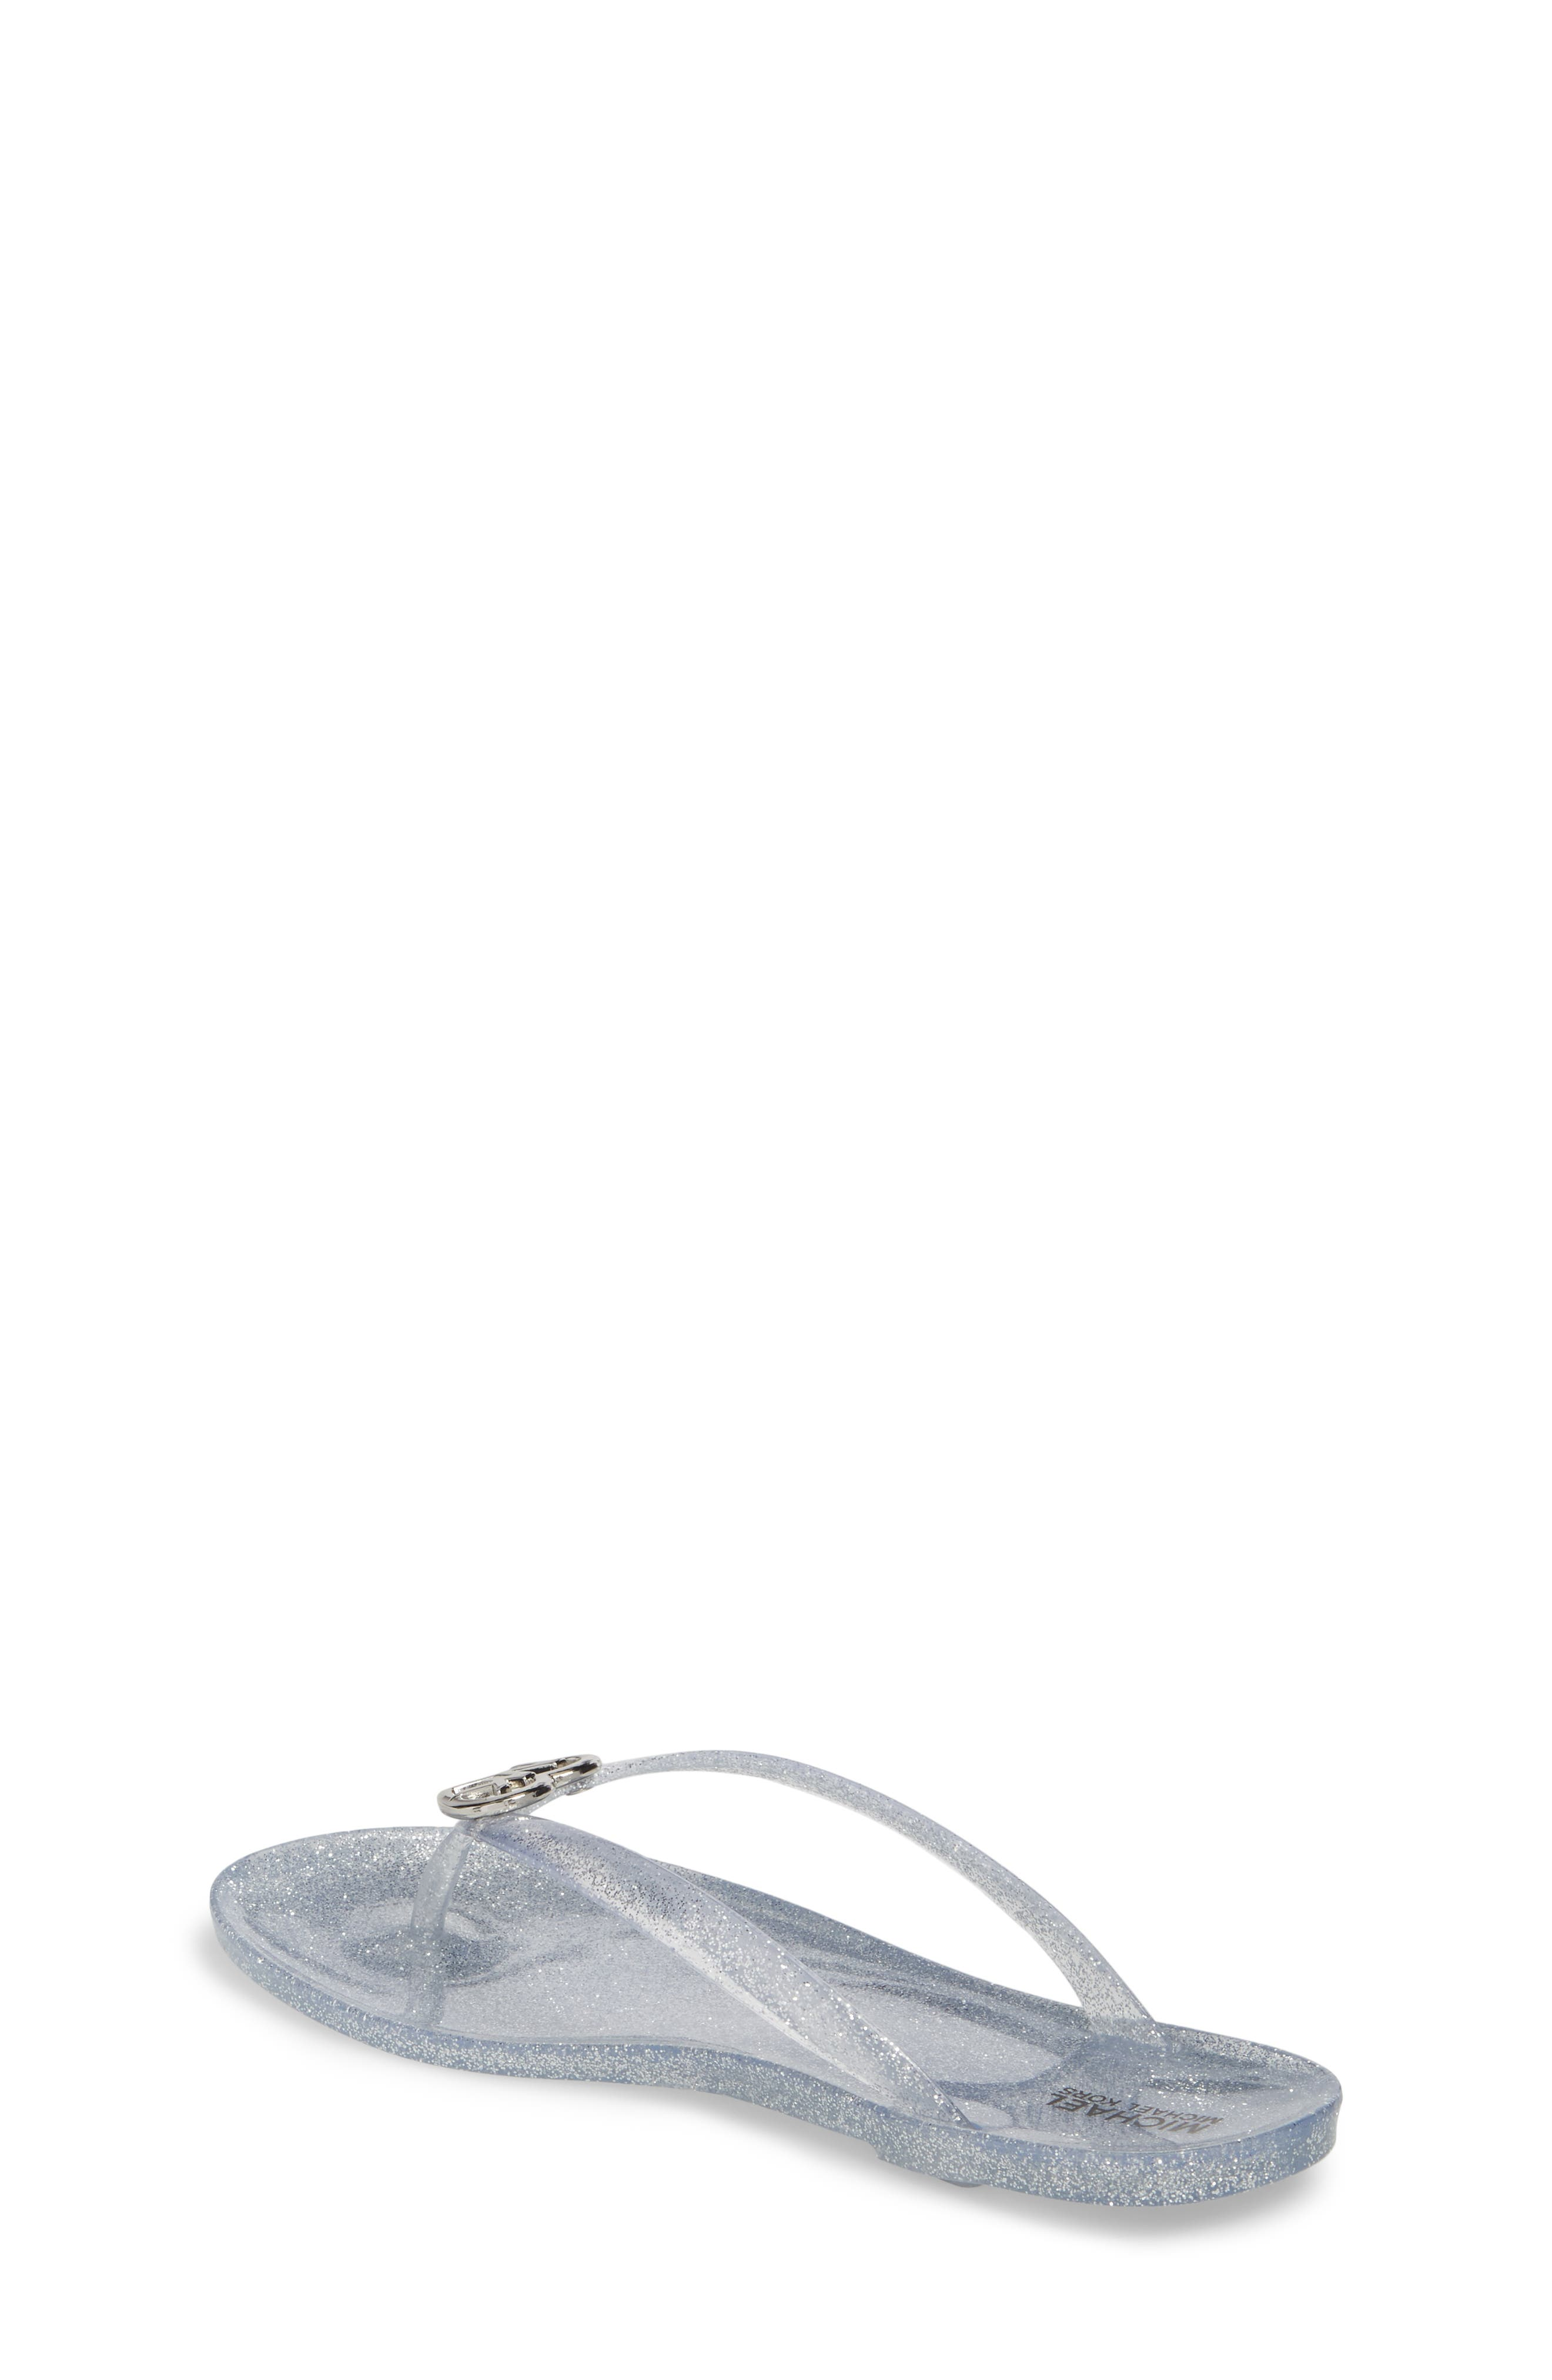 Trish Glare Glitter Flip Flop,                             Alternate thumbnail 2, color,                             040